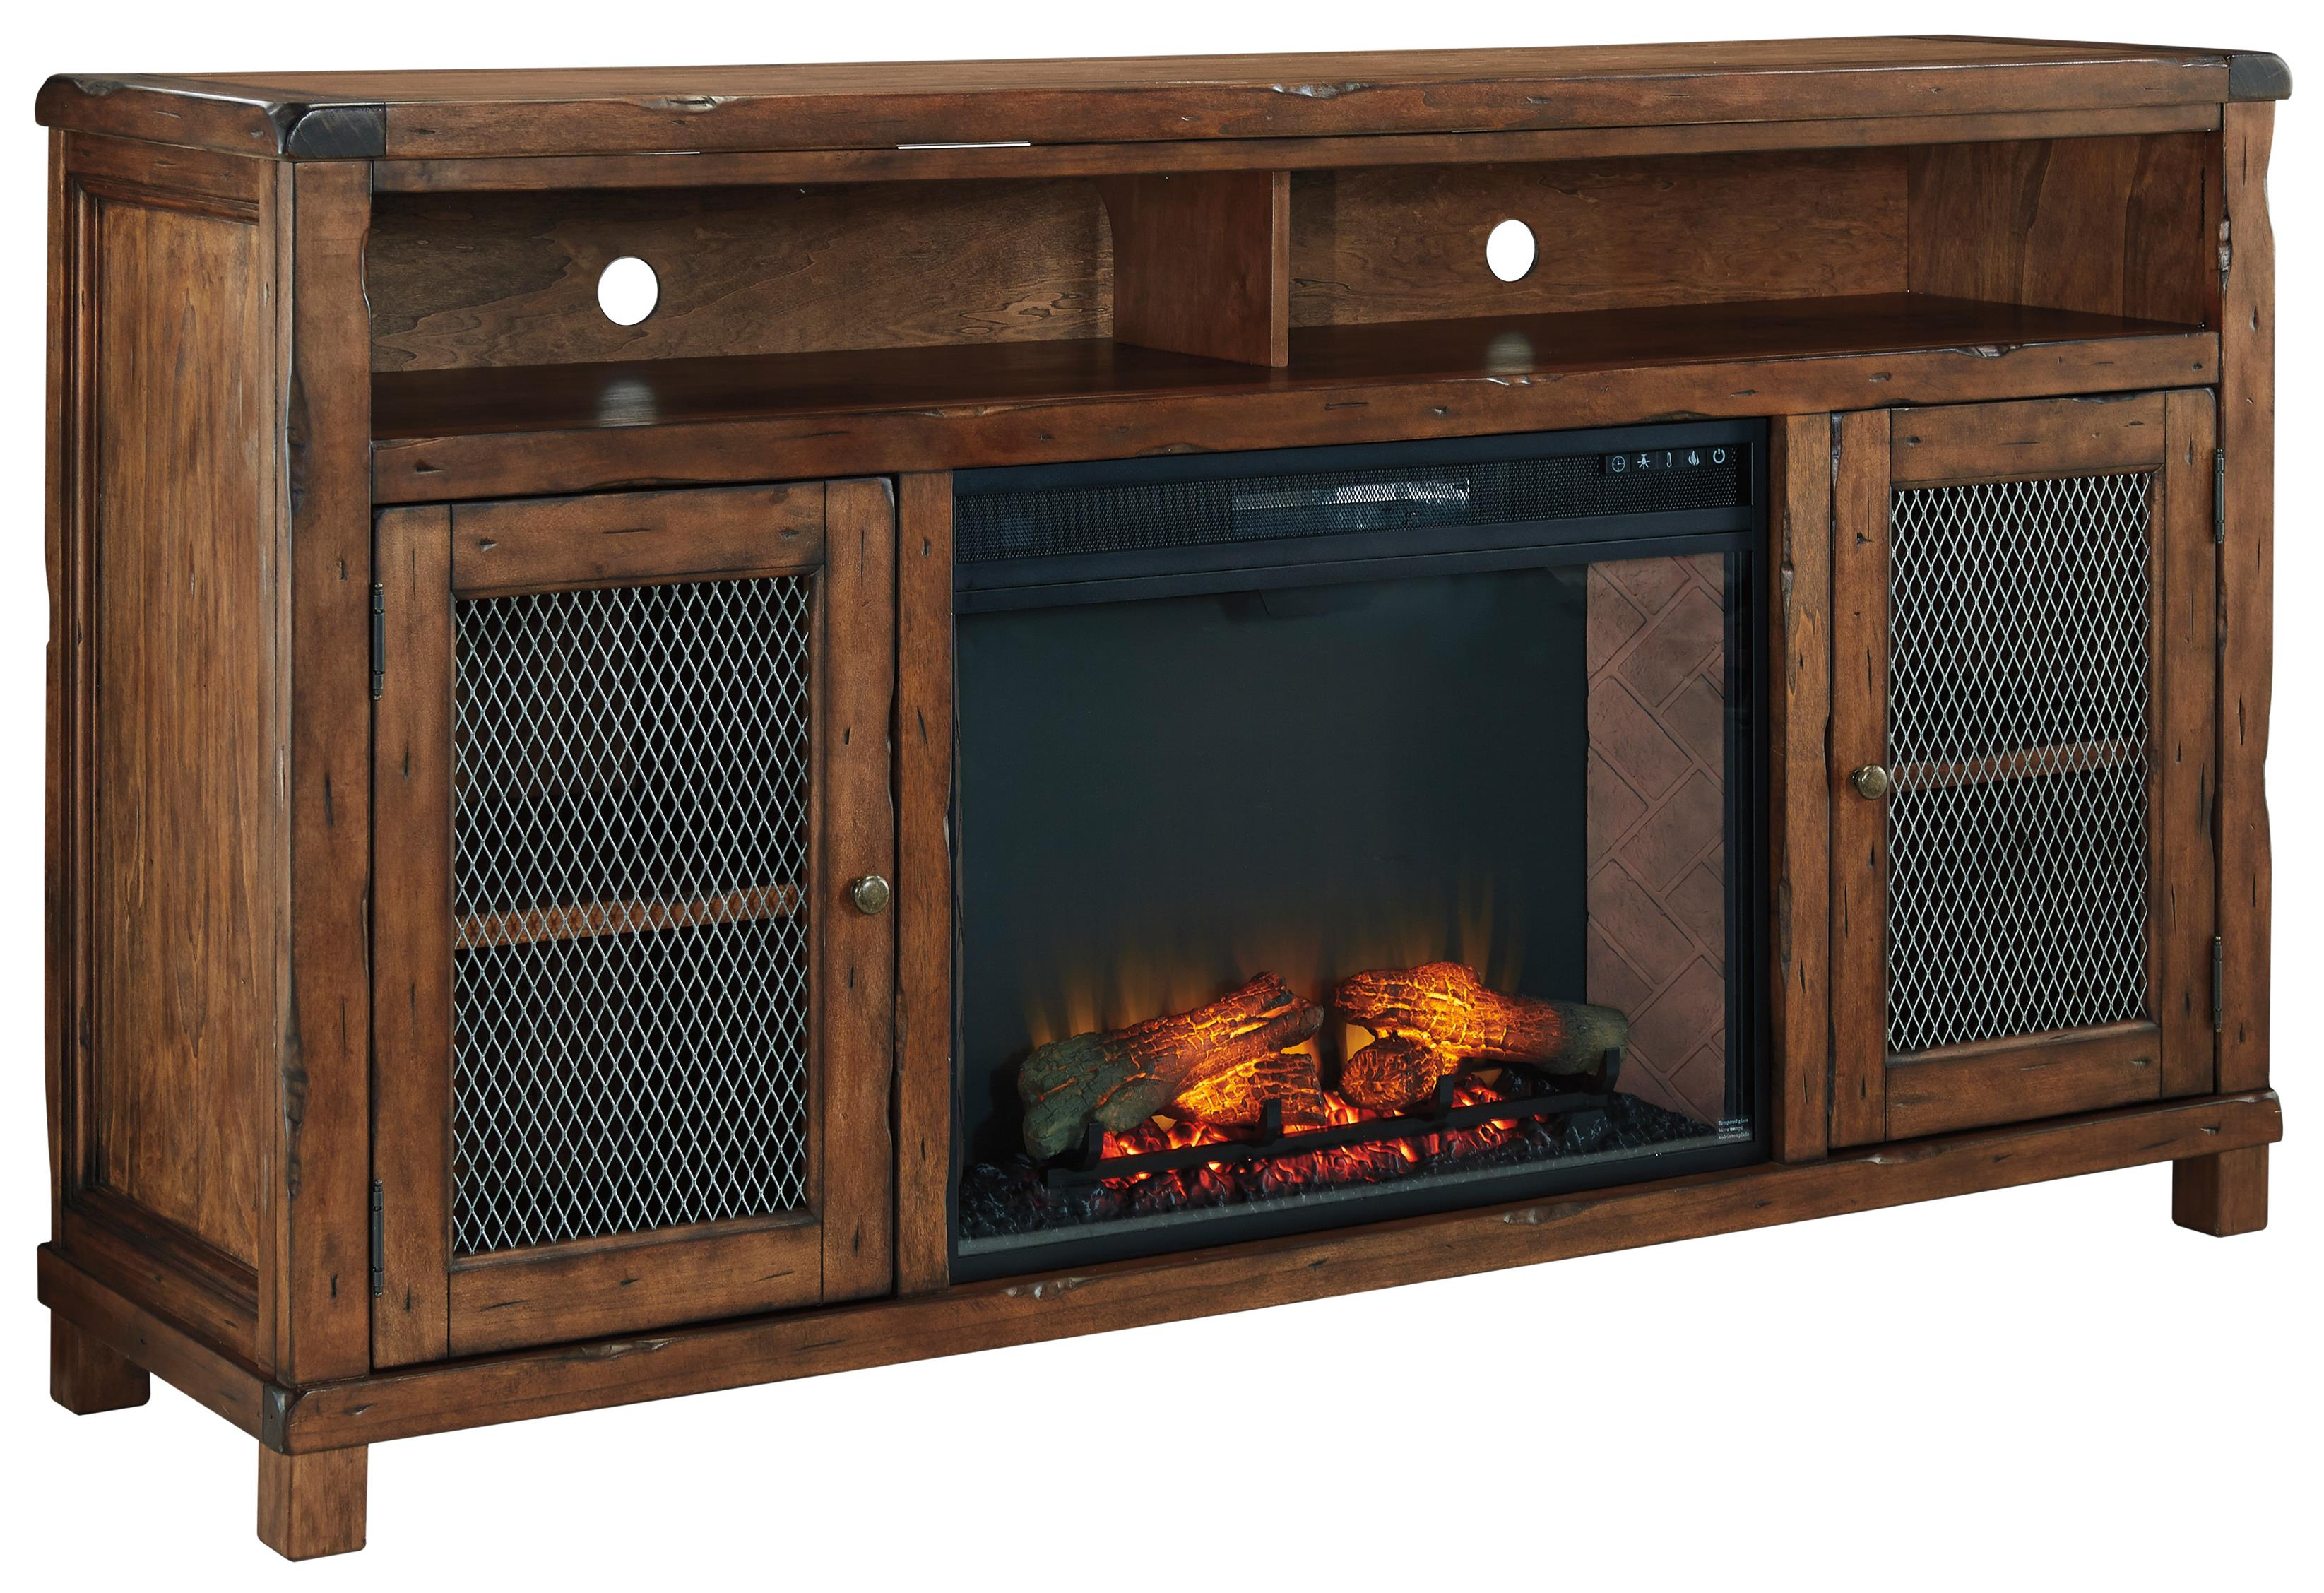 Signature Design by Ashley Tamonie XL TV Stand with Electric Fireplace Insert - Item Number: W830-68+W100-21